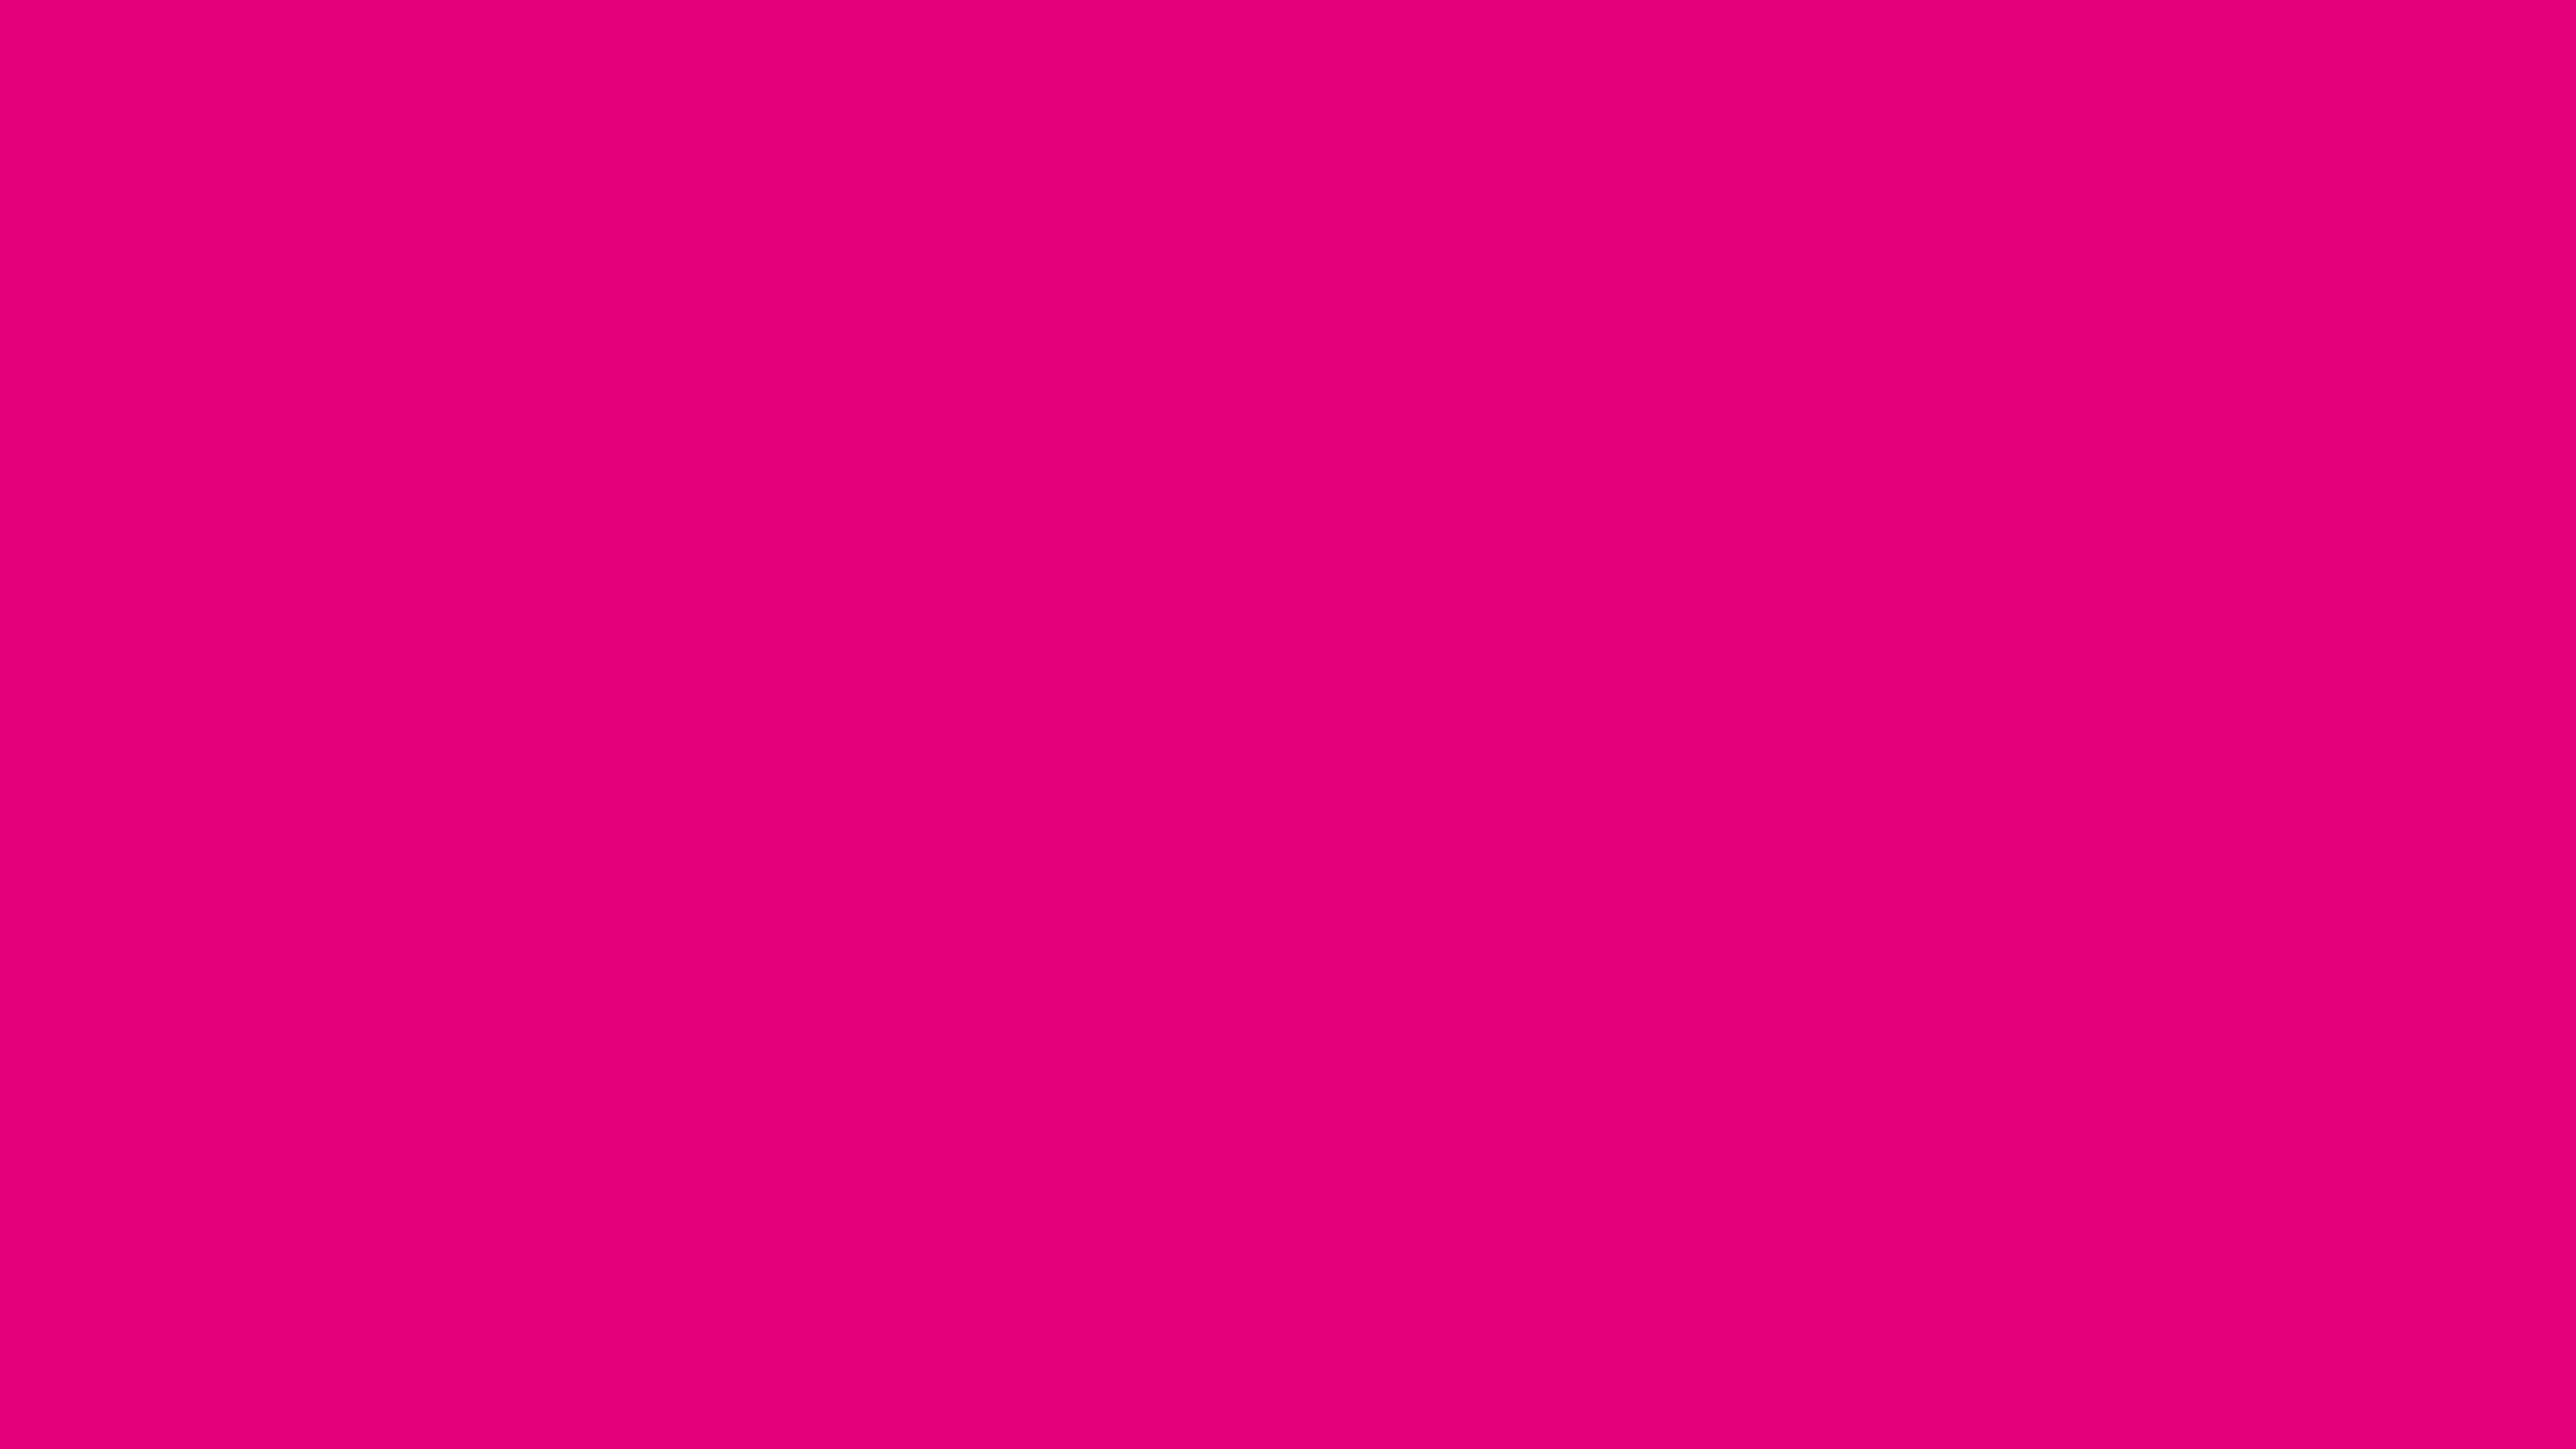 3840x2160 Mexican Pink Solid Color Background